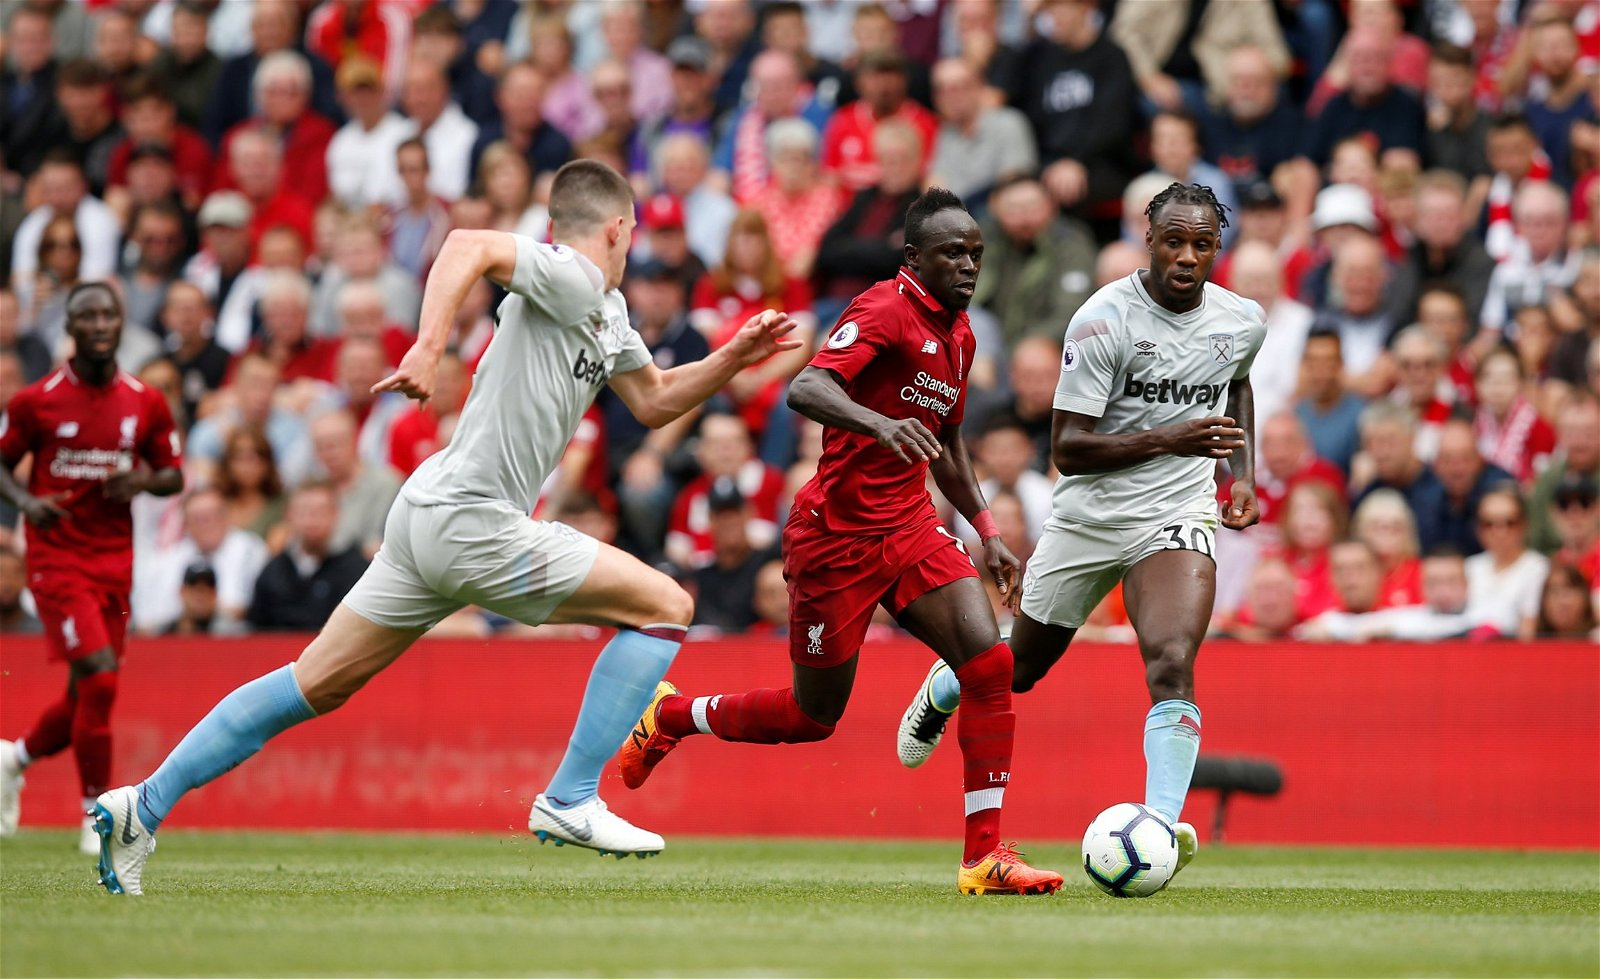 Liverpool's Sadio Mane being closed down by West Ham's Declan Rice